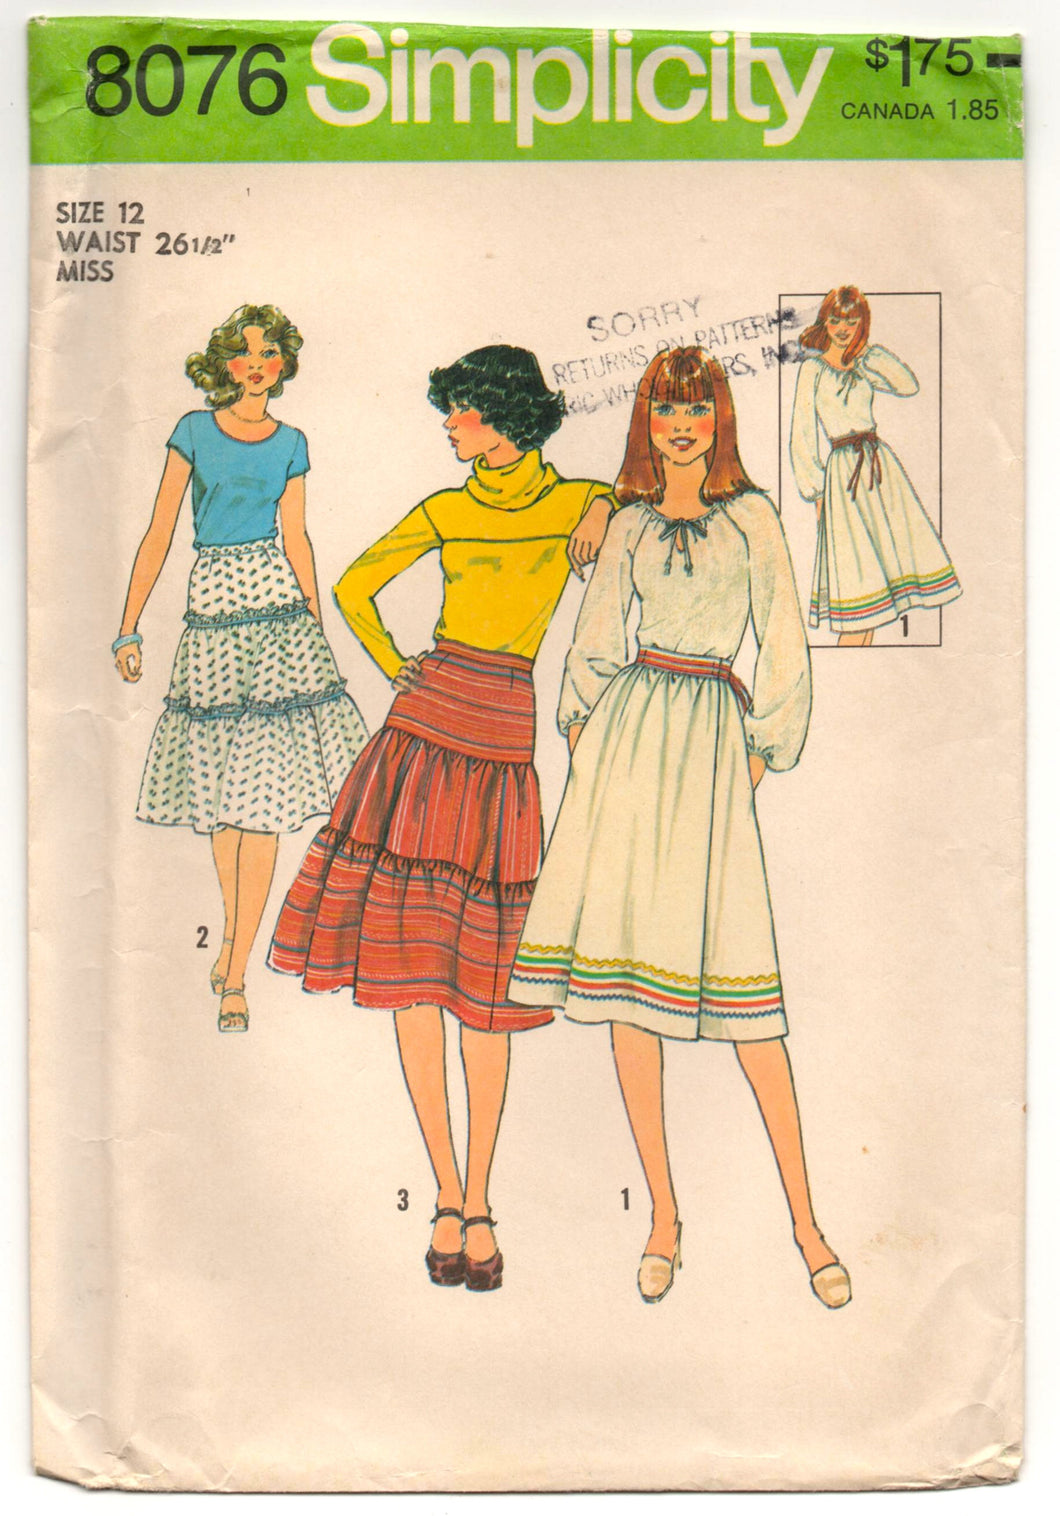 1970's Simplicity A line and Tiered Skirt Pattern - Waist 26.5